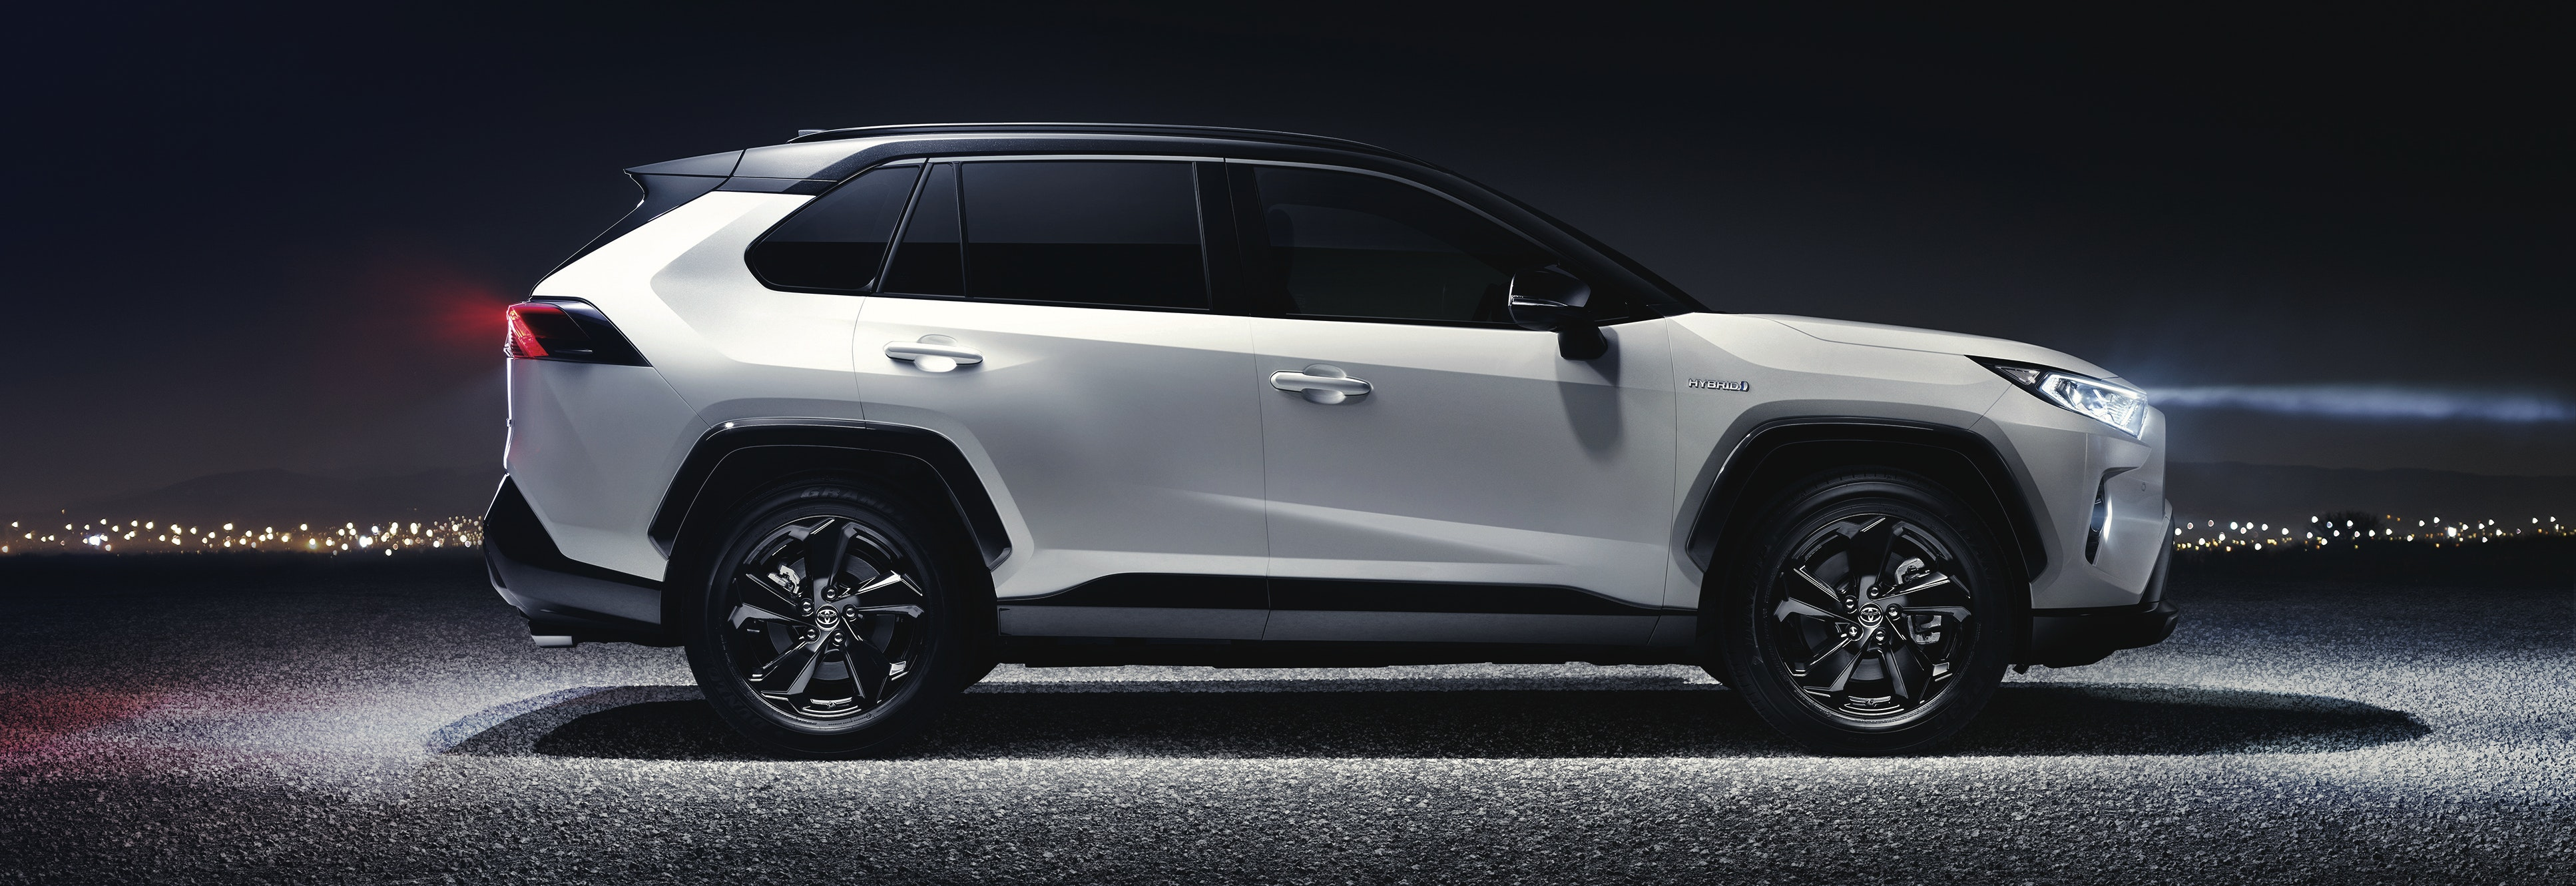 2019 Toyota RAV4 price, specs, and release date | carwow